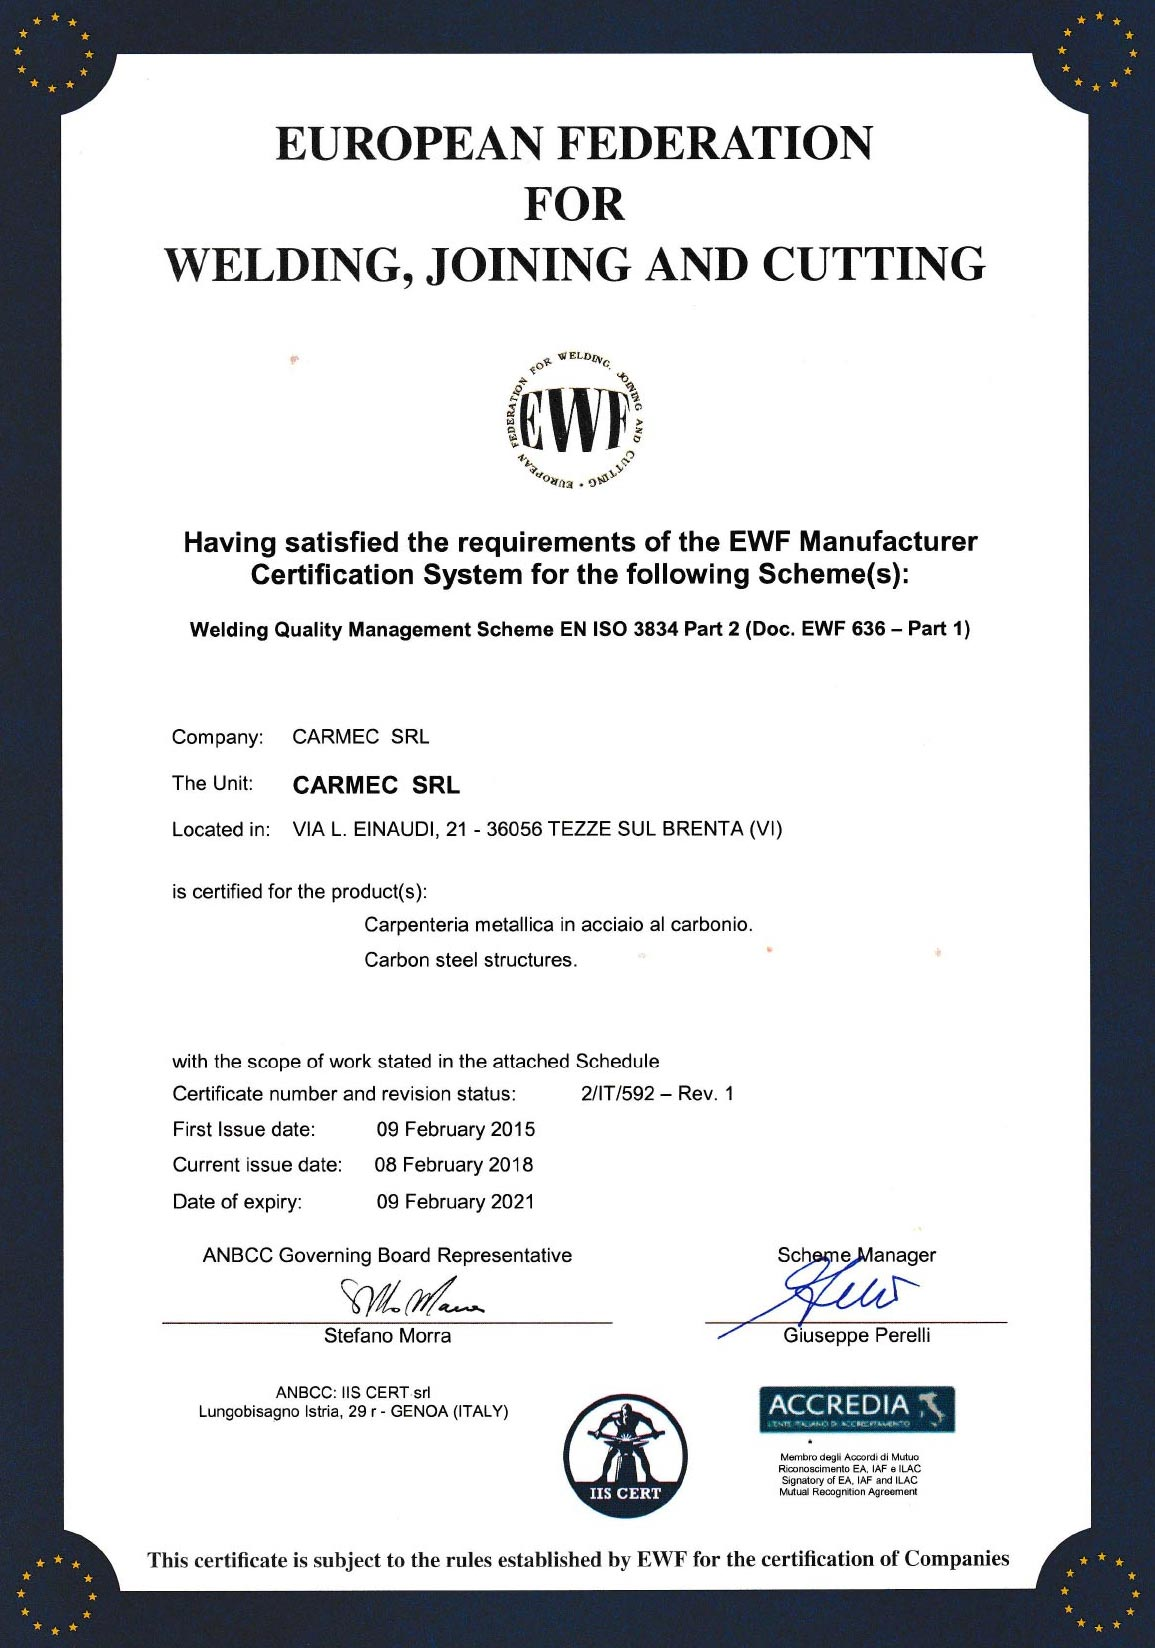 Carmec Srl - European Federation for Welding, Joining and Cutting